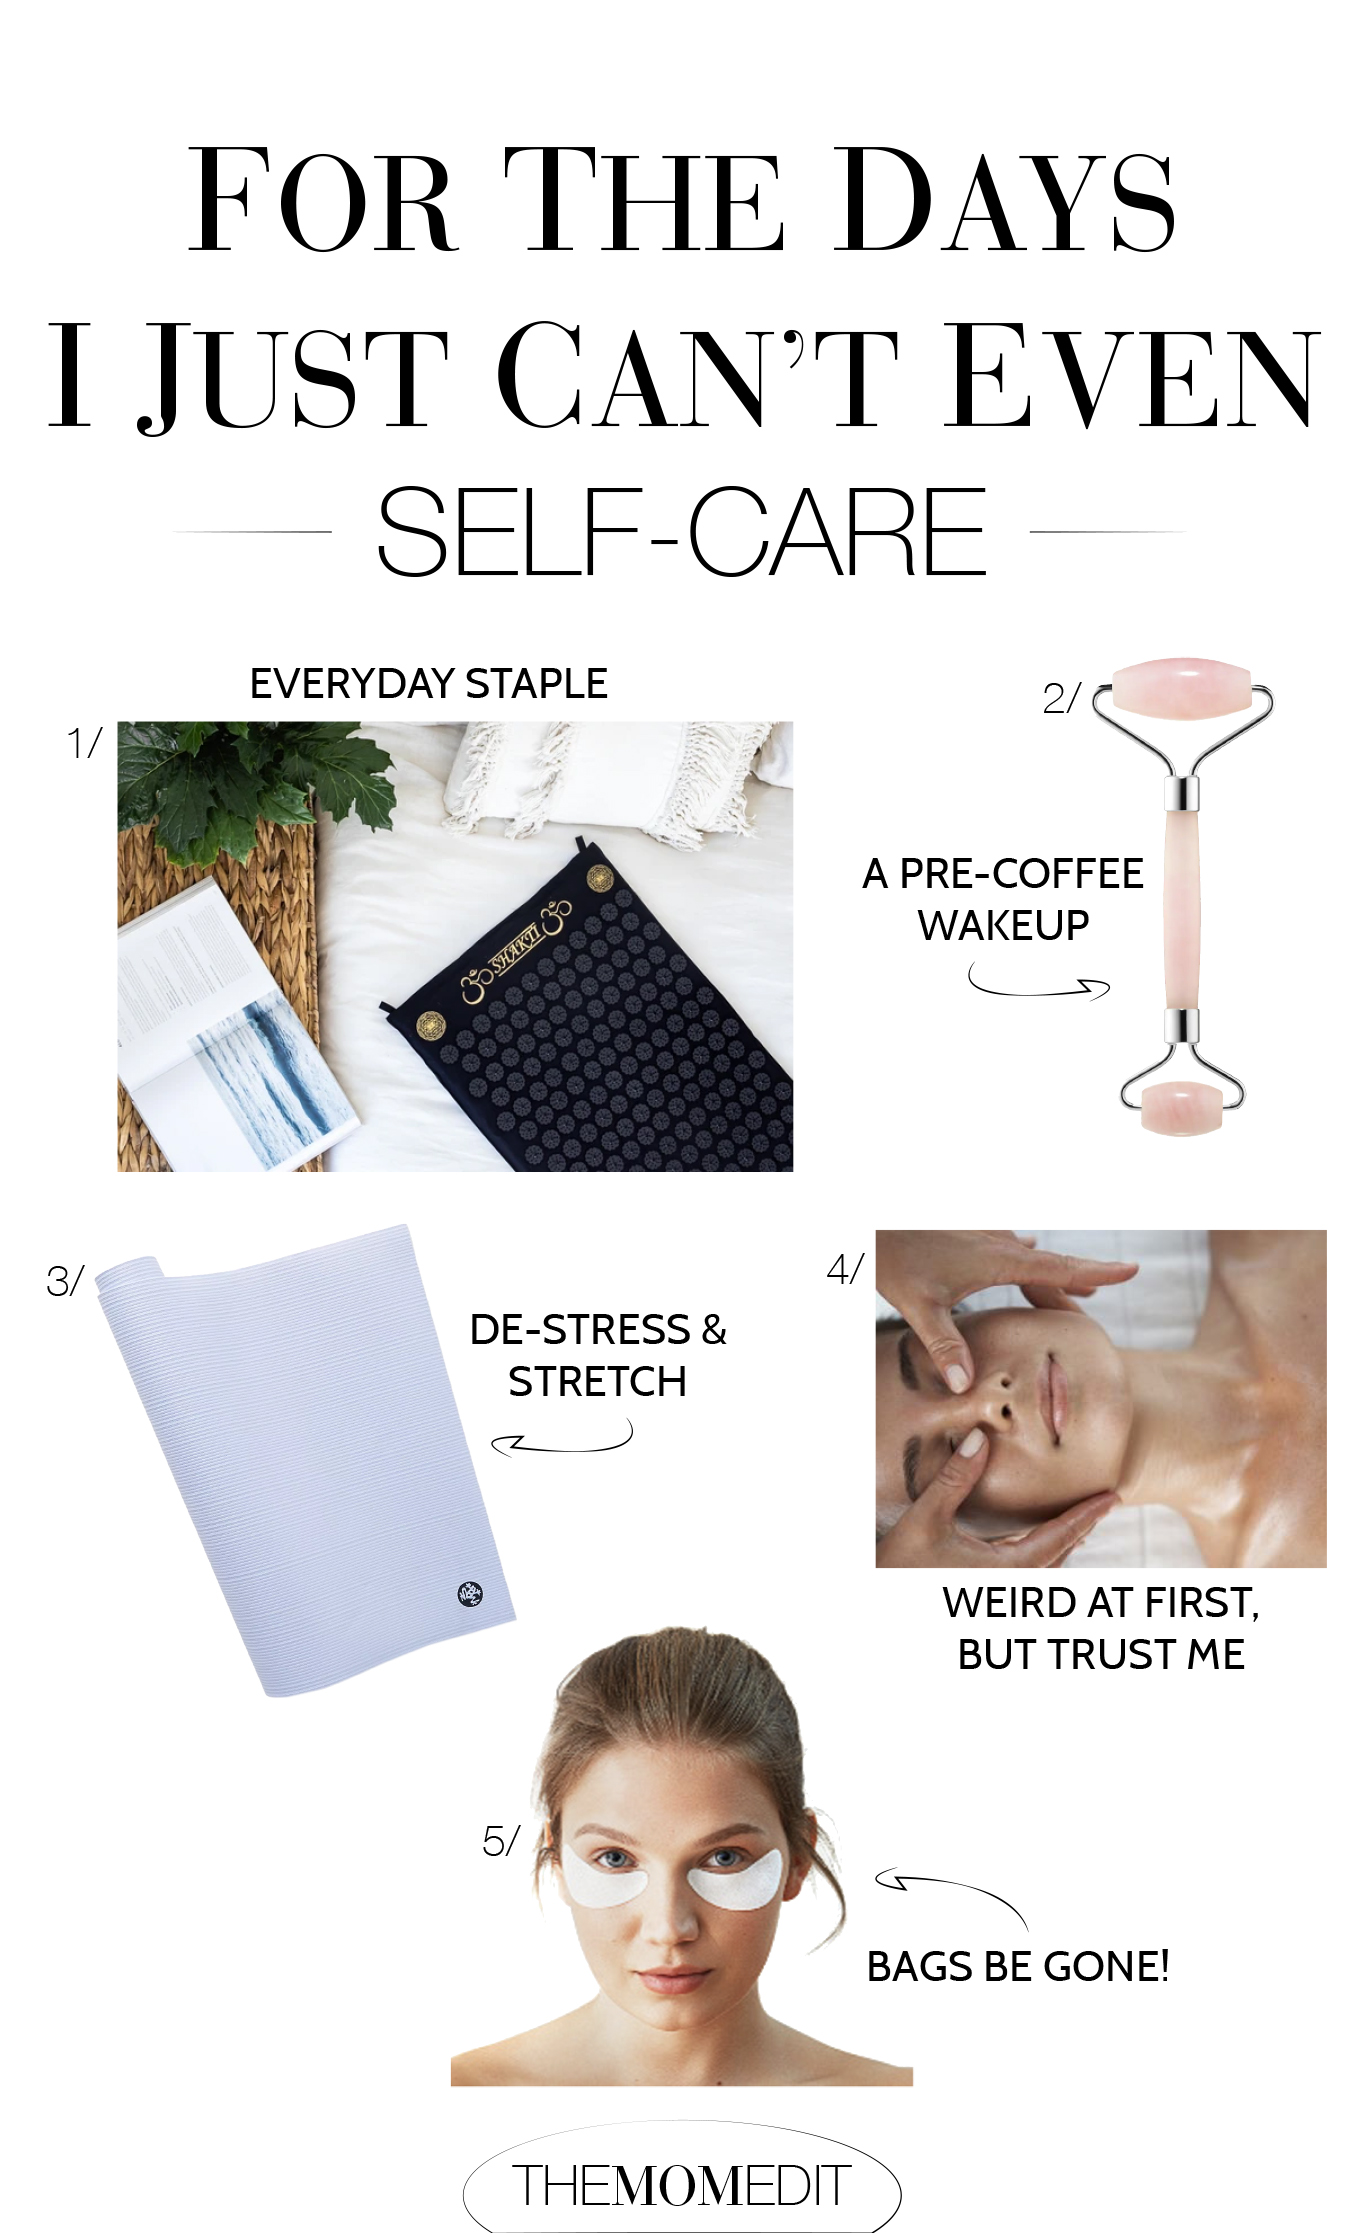 From yoga mats to facial massage, here's what helps me for the days when I truly #canteven, & my trusty black top + MOTHER Denim ain't cutting it.